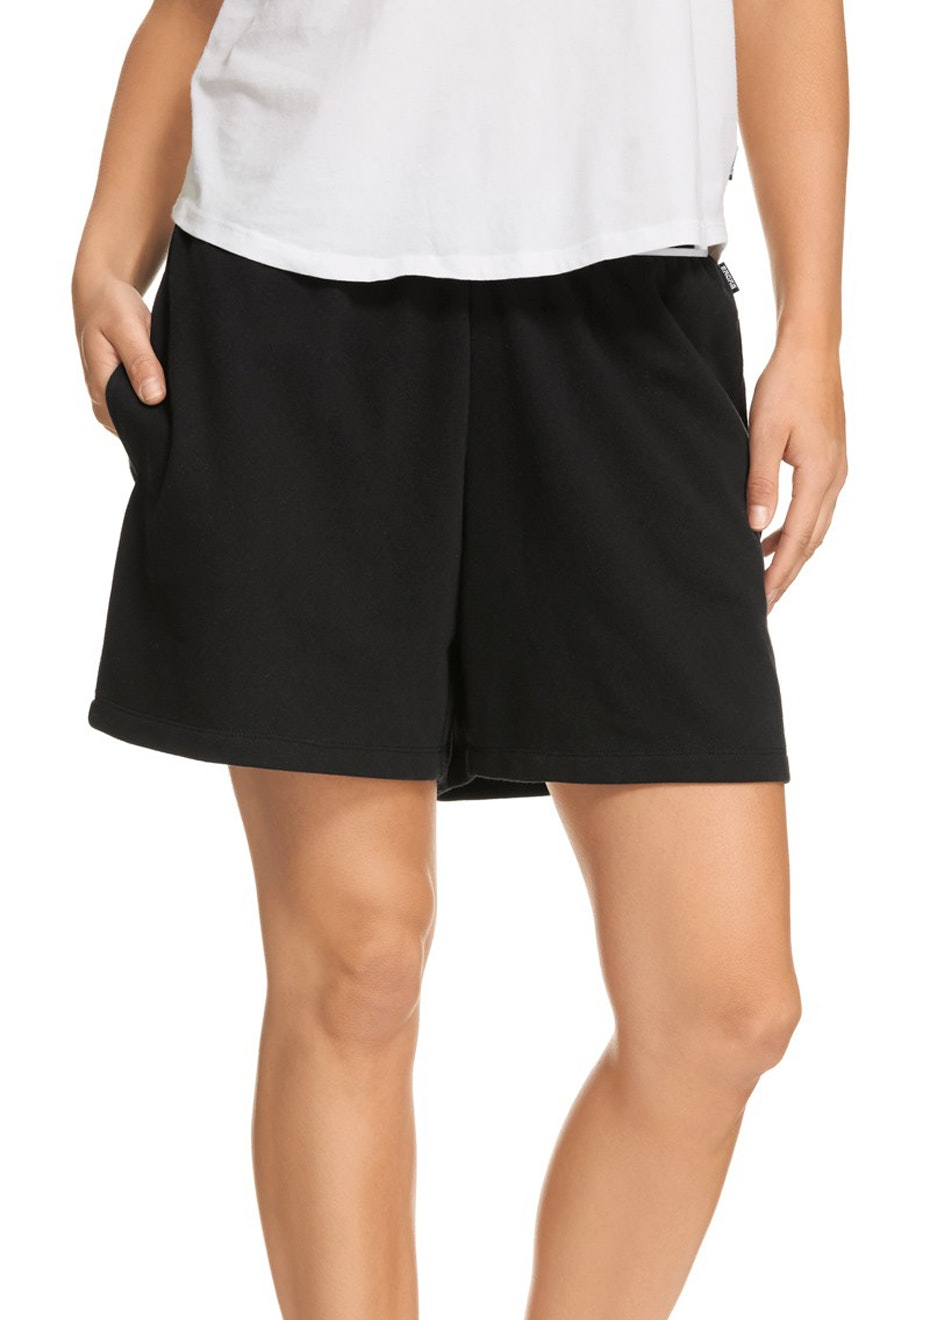 BONDS - Mid Length Short  - Black